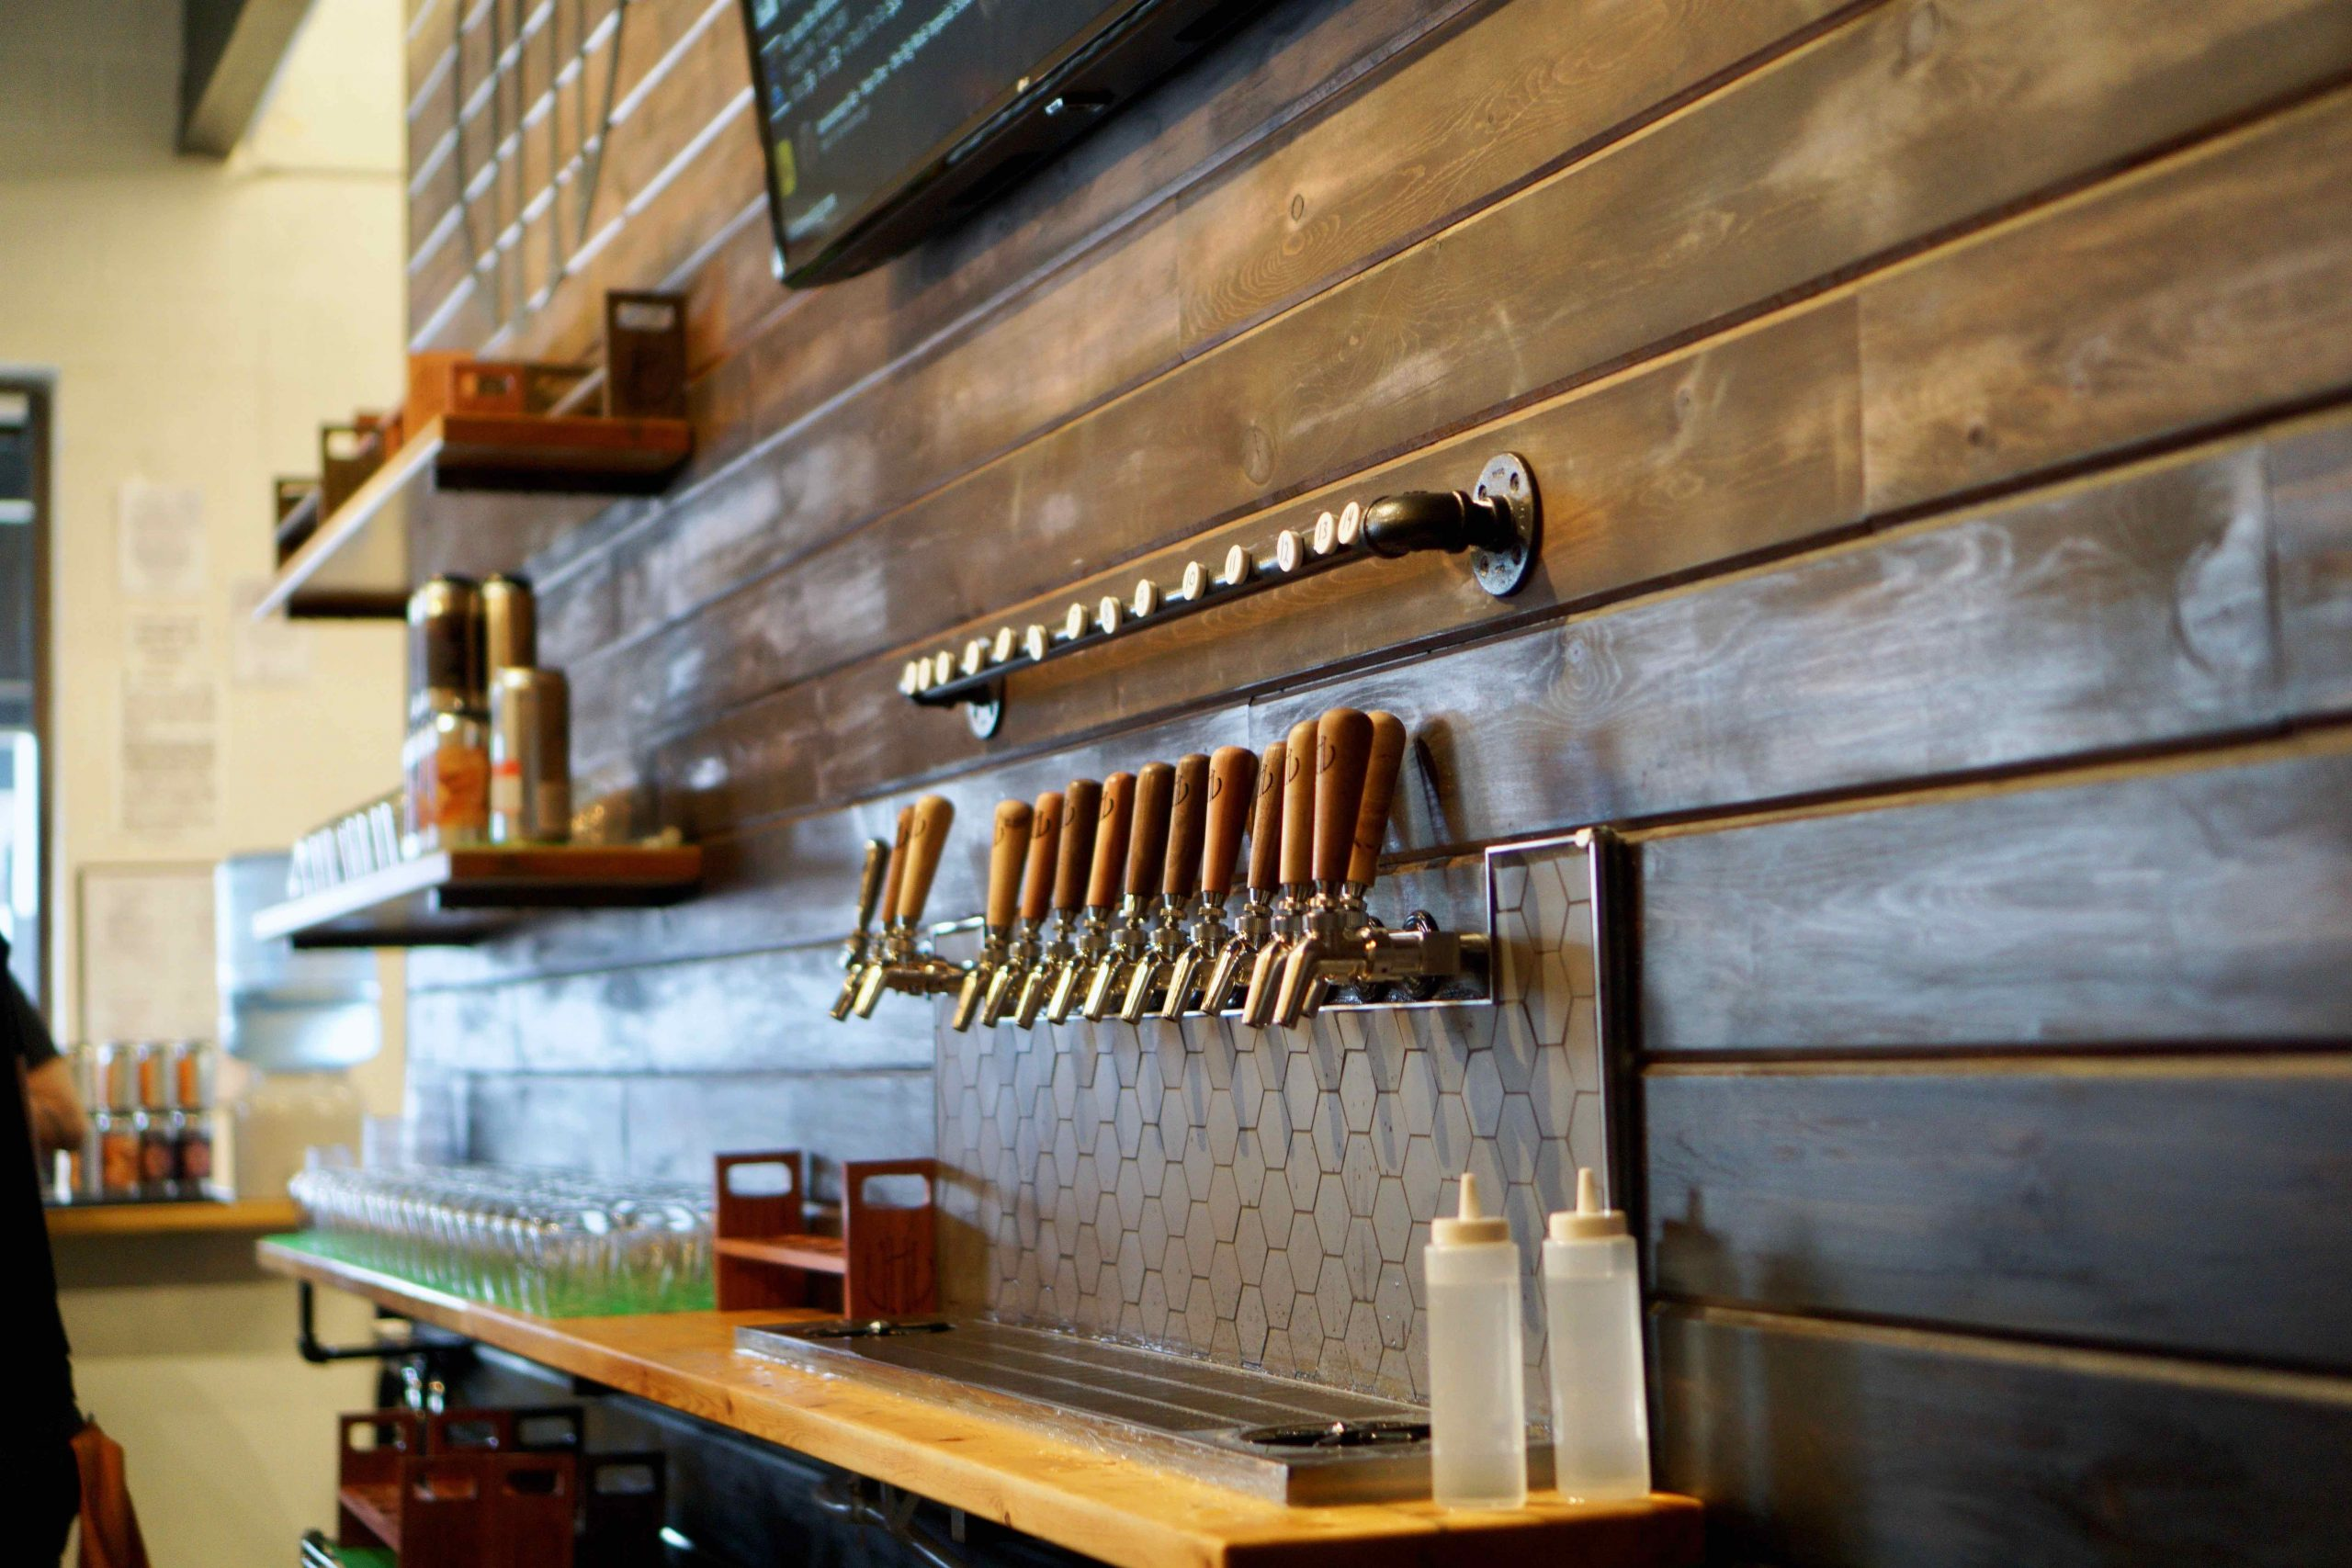 Taps at Uhl's Brewing Company